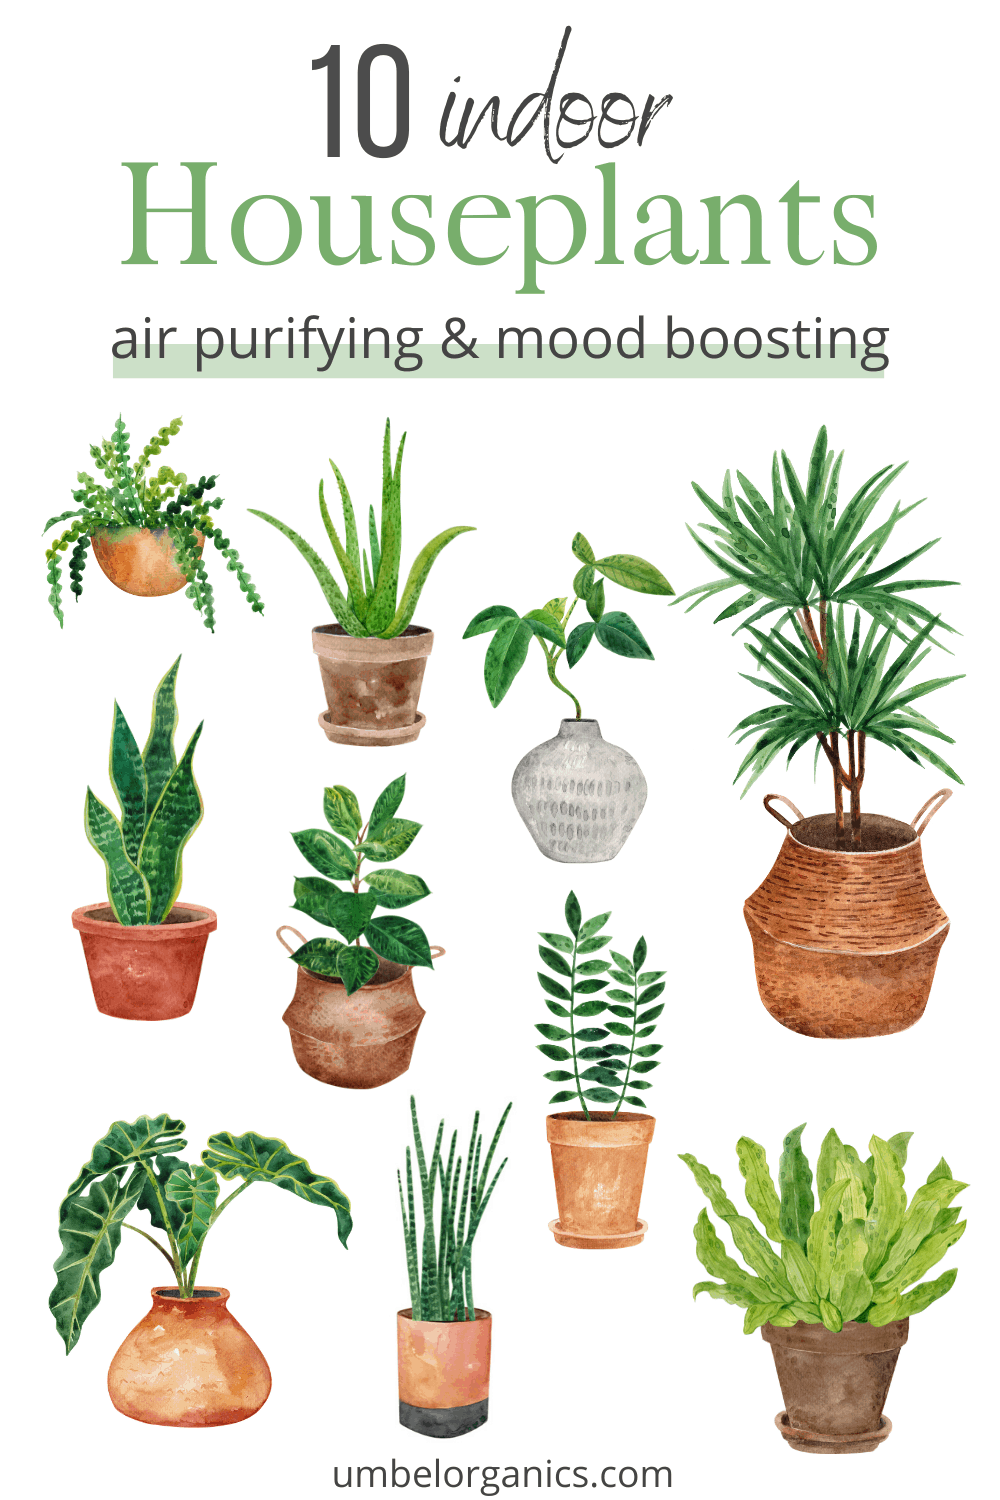 10 houseplant to boost mood and purify the air